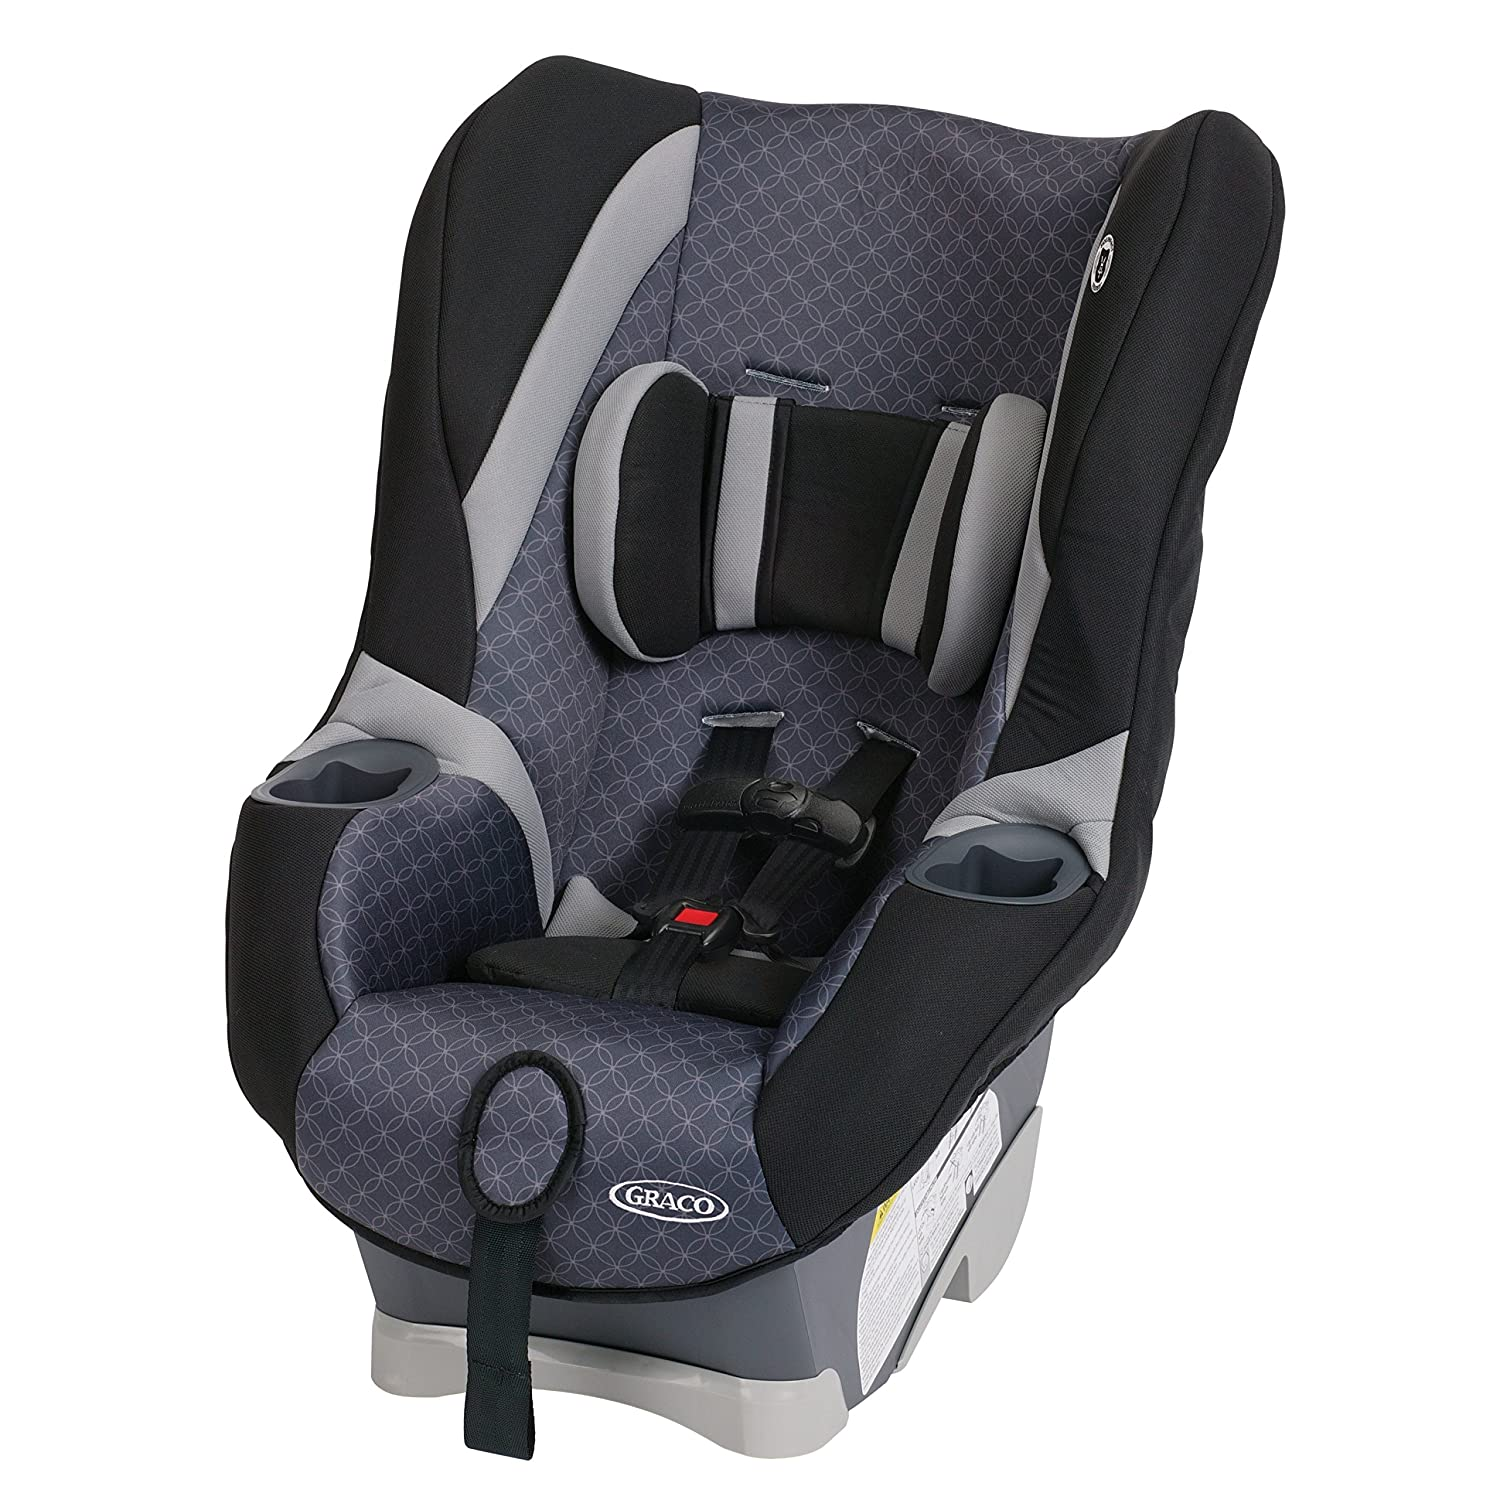 Maxi Cosi Tobi Car Seat Black Reflection Reviews - Velcromag